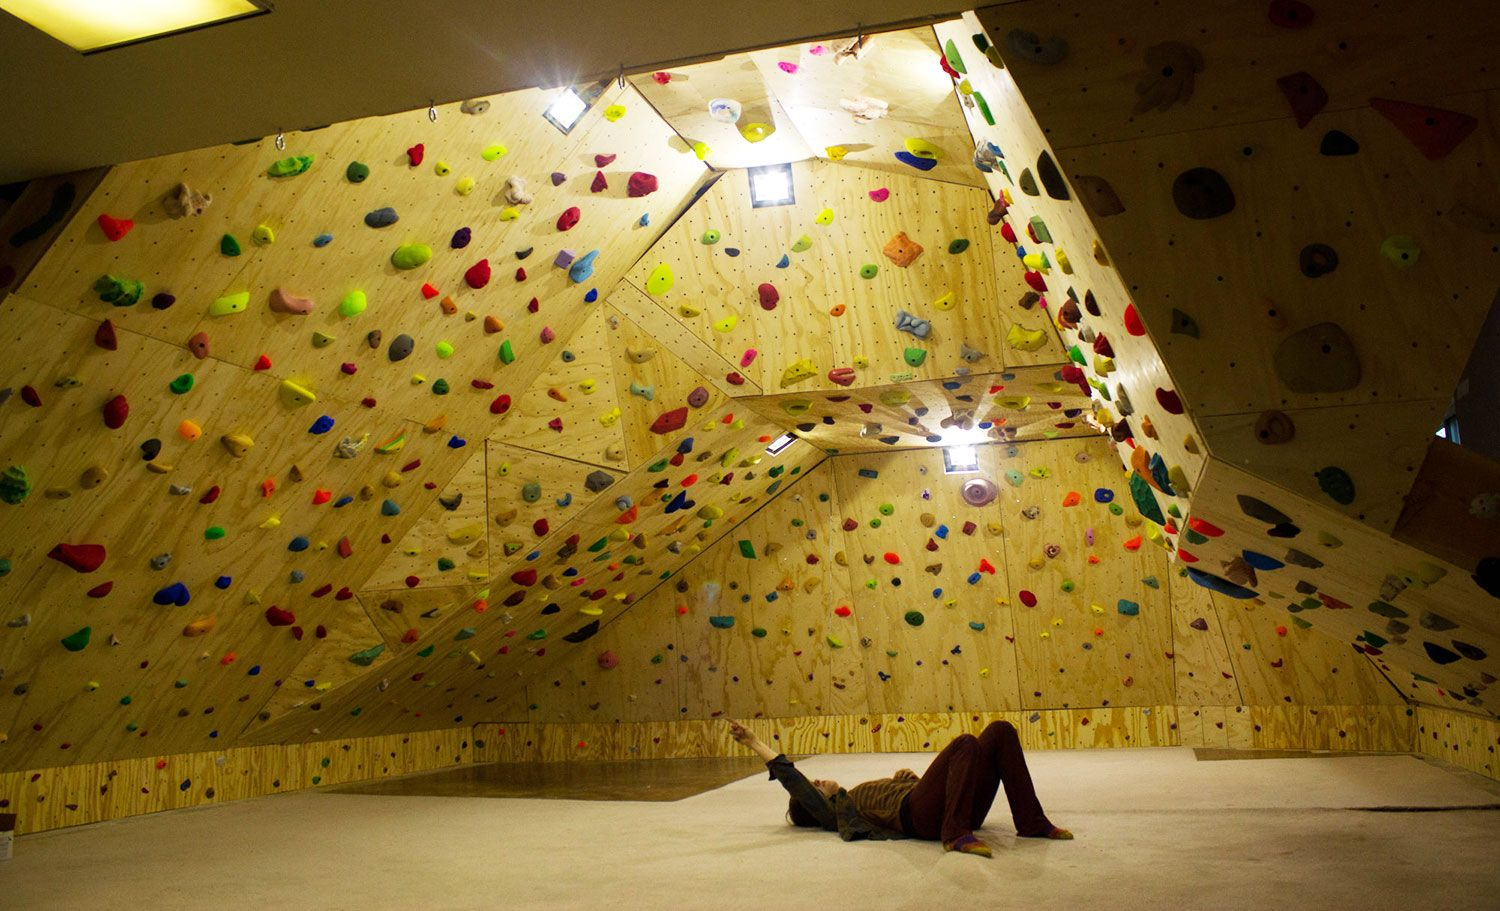 How to Build a Home Climbing Wall | Bouldering wall, Walls and Attic